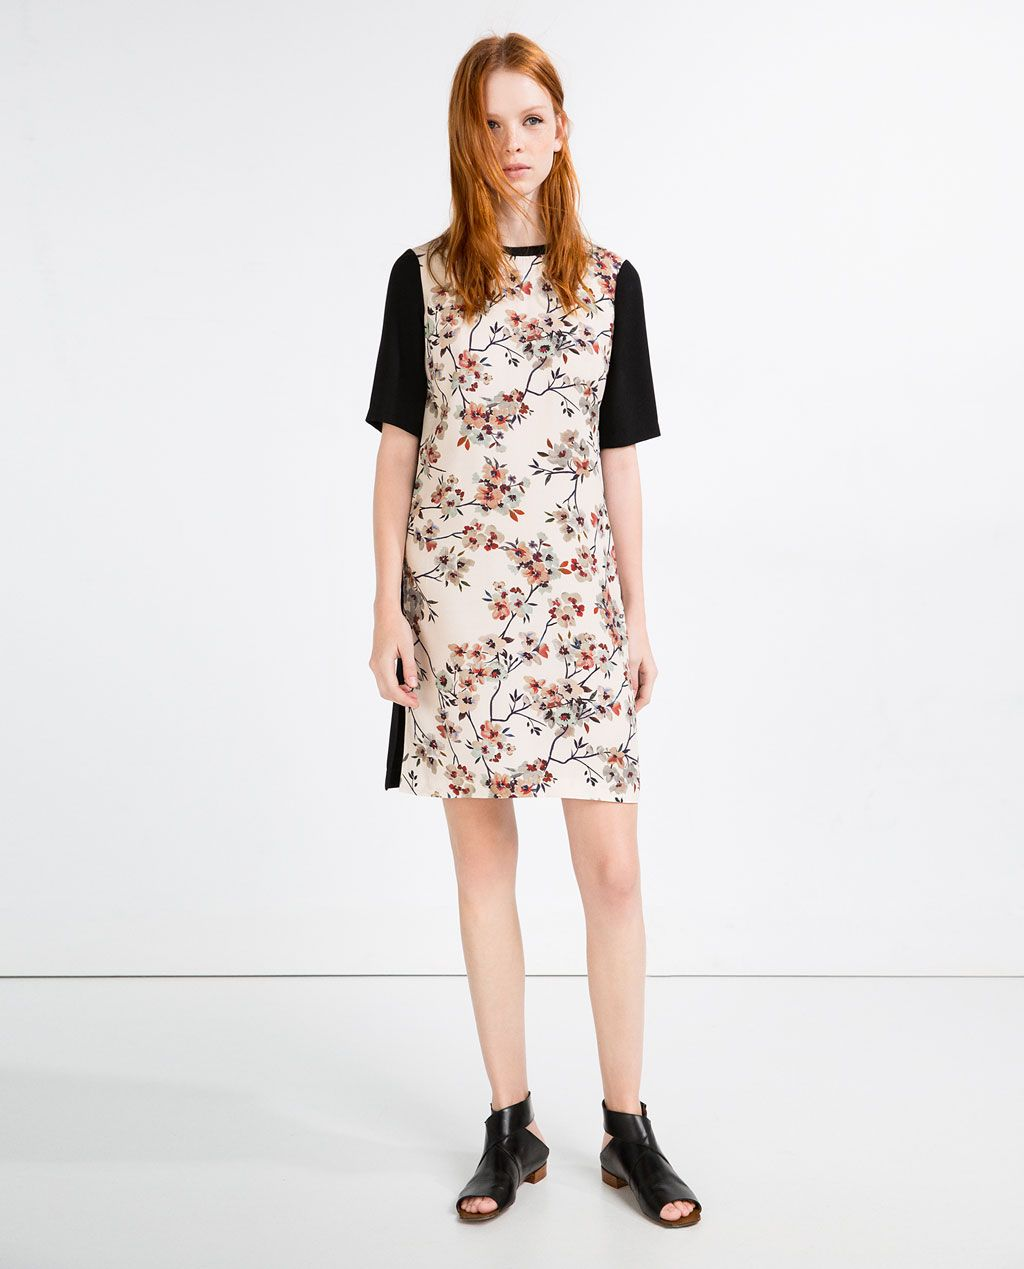 Contrast lace dress zara  Image  of CONTRAST PRINT TUNIC from Zara  casual dresses